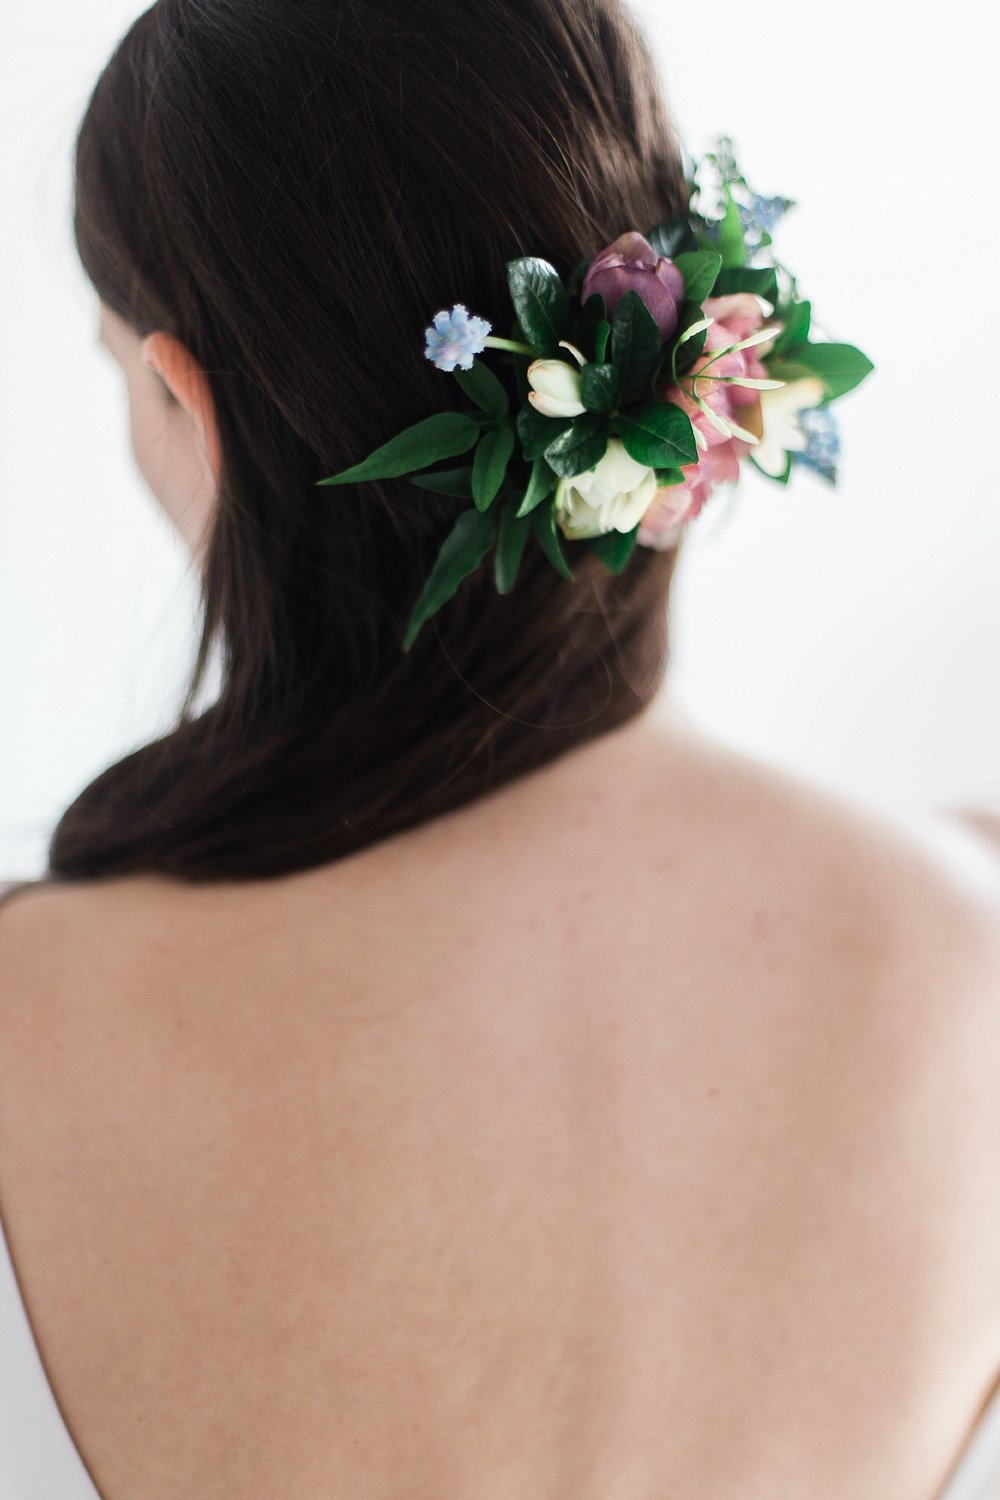 Winnipeg Wedding Photographer Keila Marie Photography | Academy Florist | Floral hair pieces